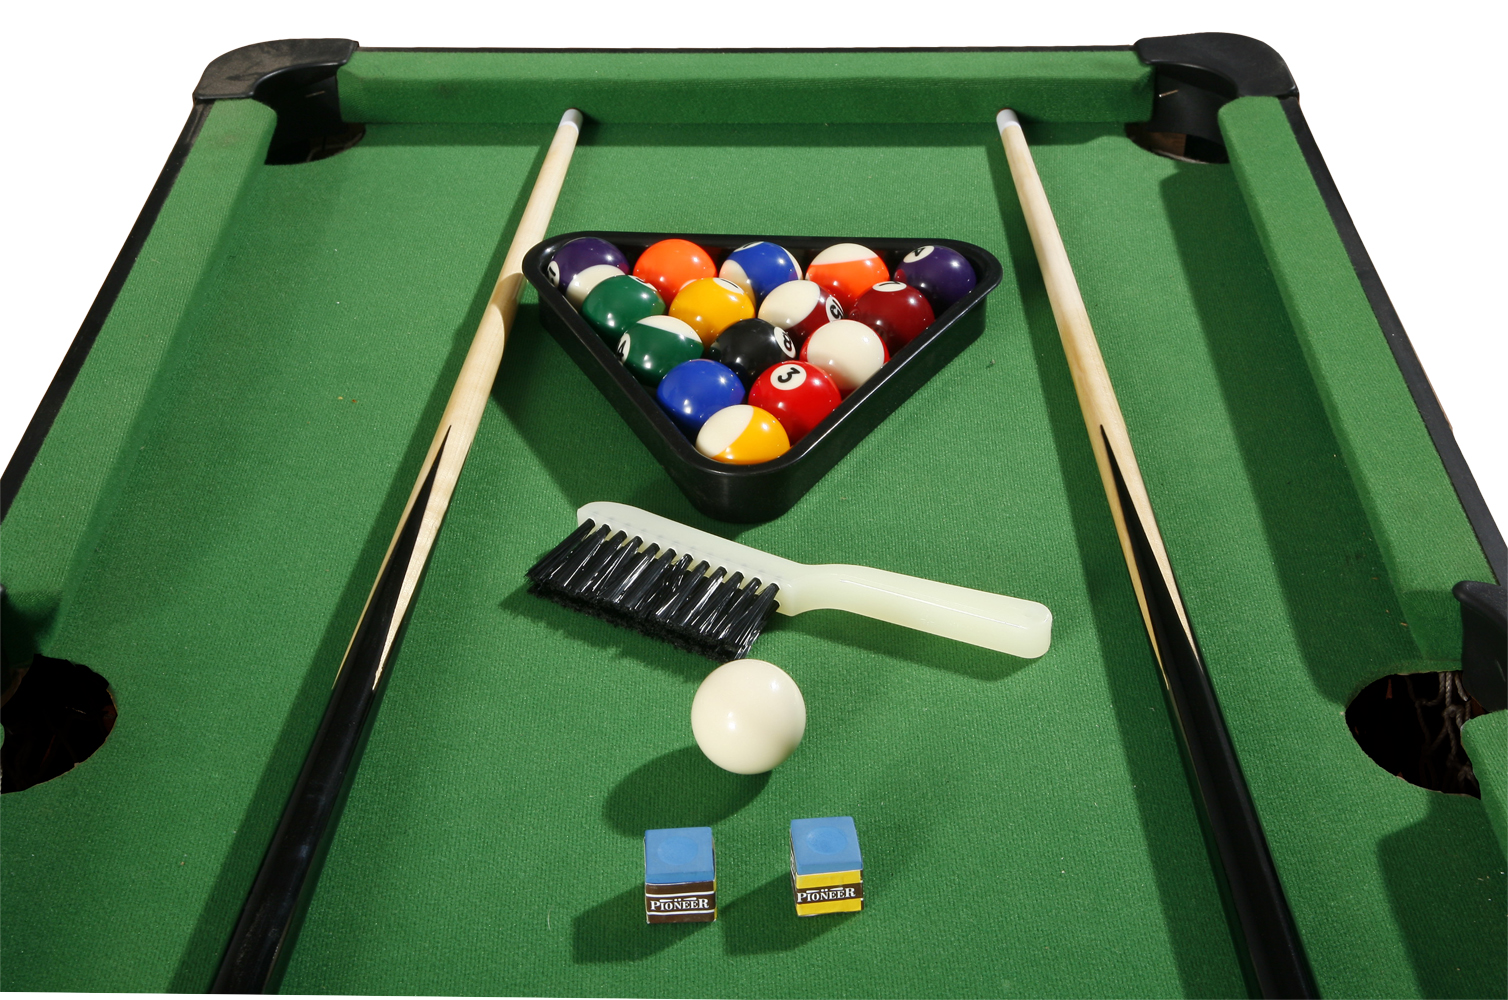 Brunswick Pool Table Prices 40 harvil table top pool table replaced by ng1012t swimming pools pool ...